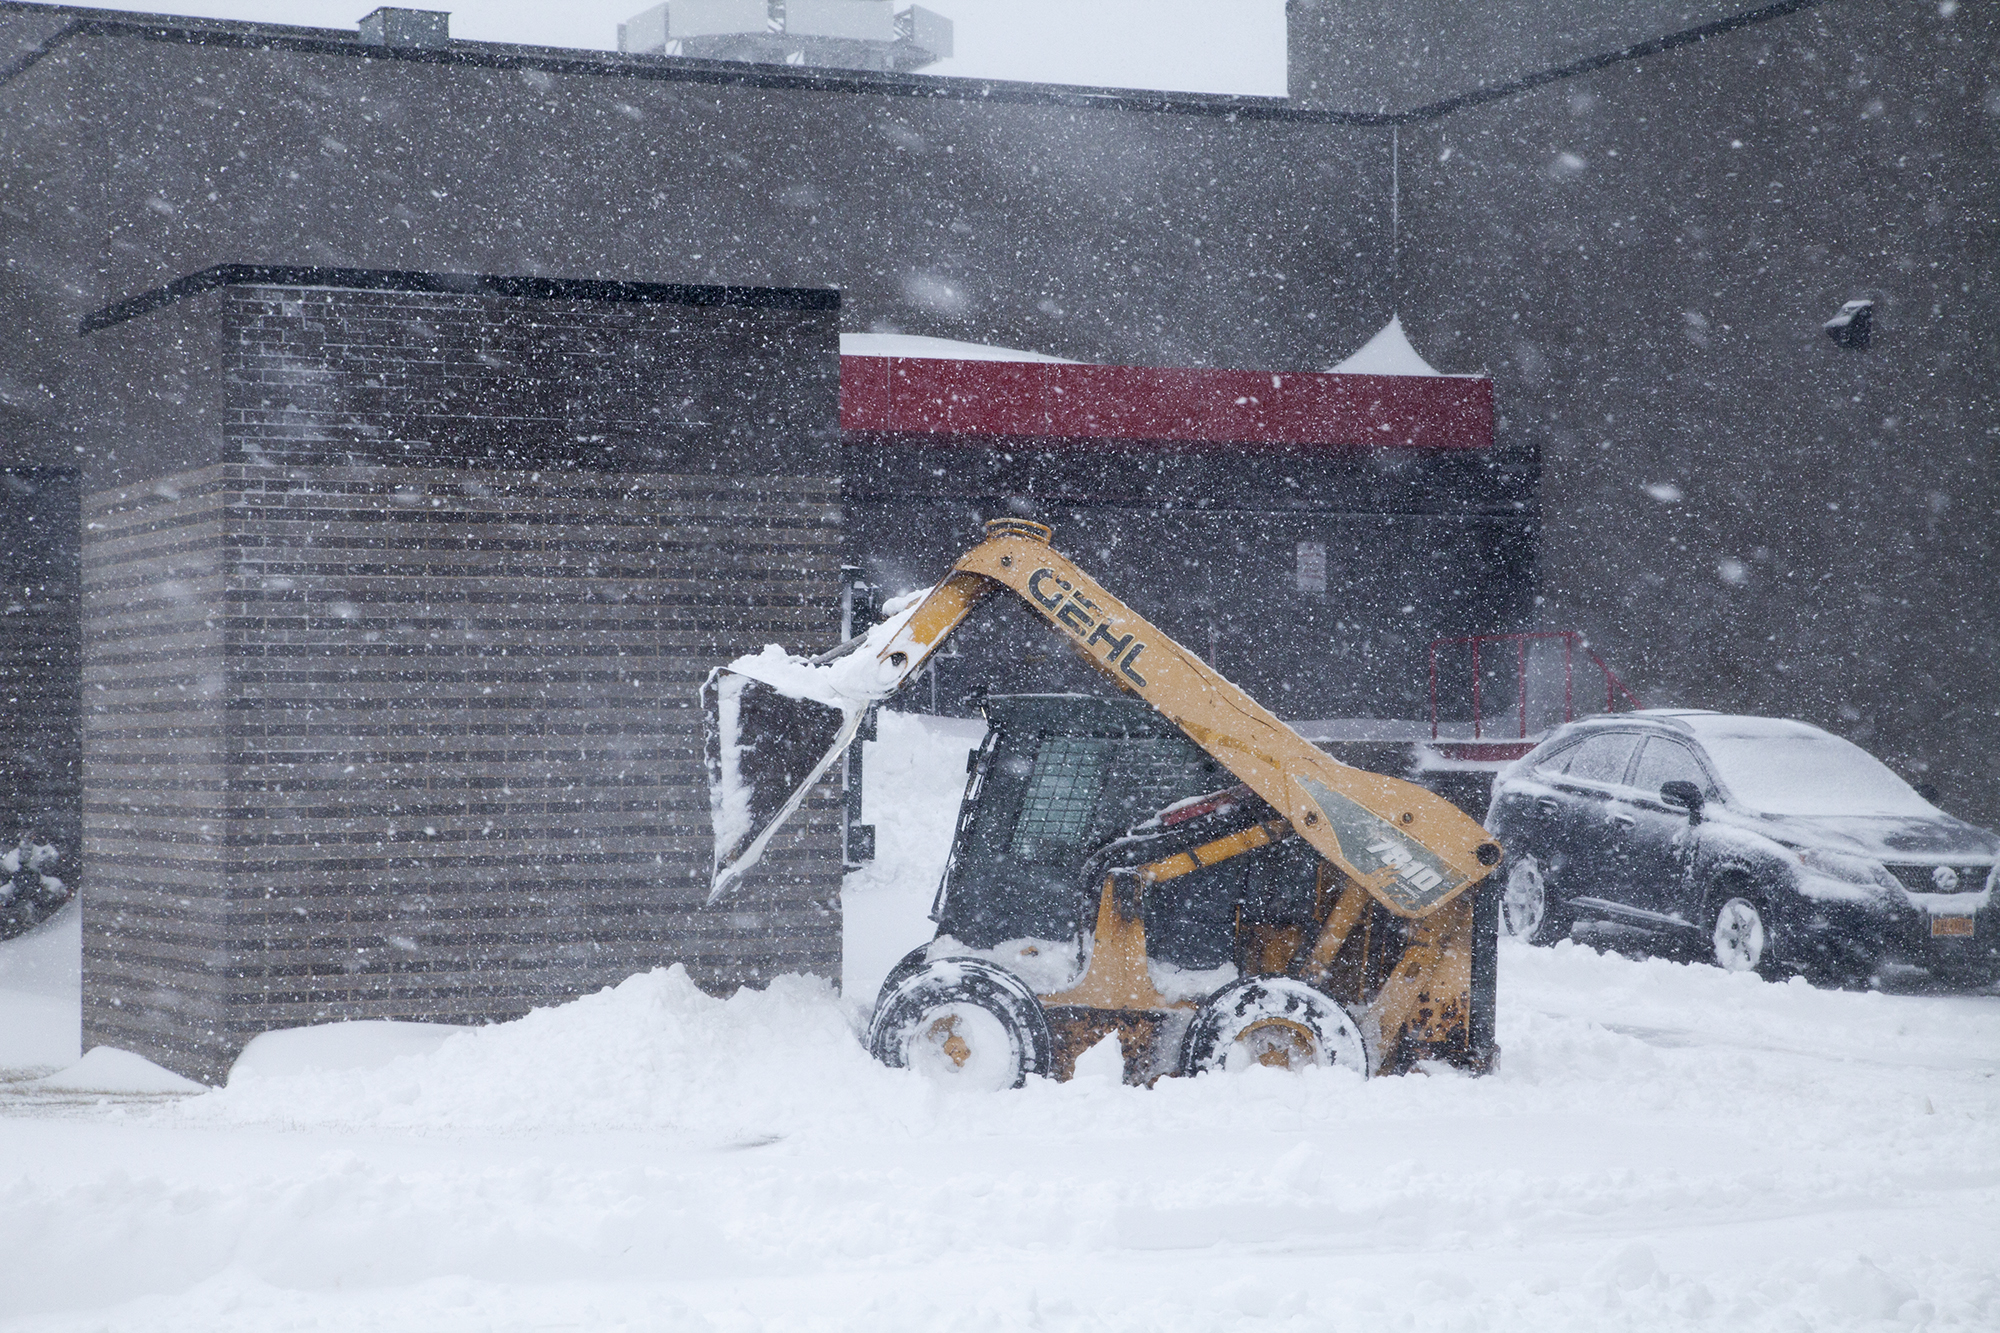 A snow plow at Stony Brook University during Winter Storm Jonas on Saturday, Jan. 23. Snow plows operated both day and night on Saturday to clear roads and walkways. CHRISTOPHER CAMERON/THE STATESMAN